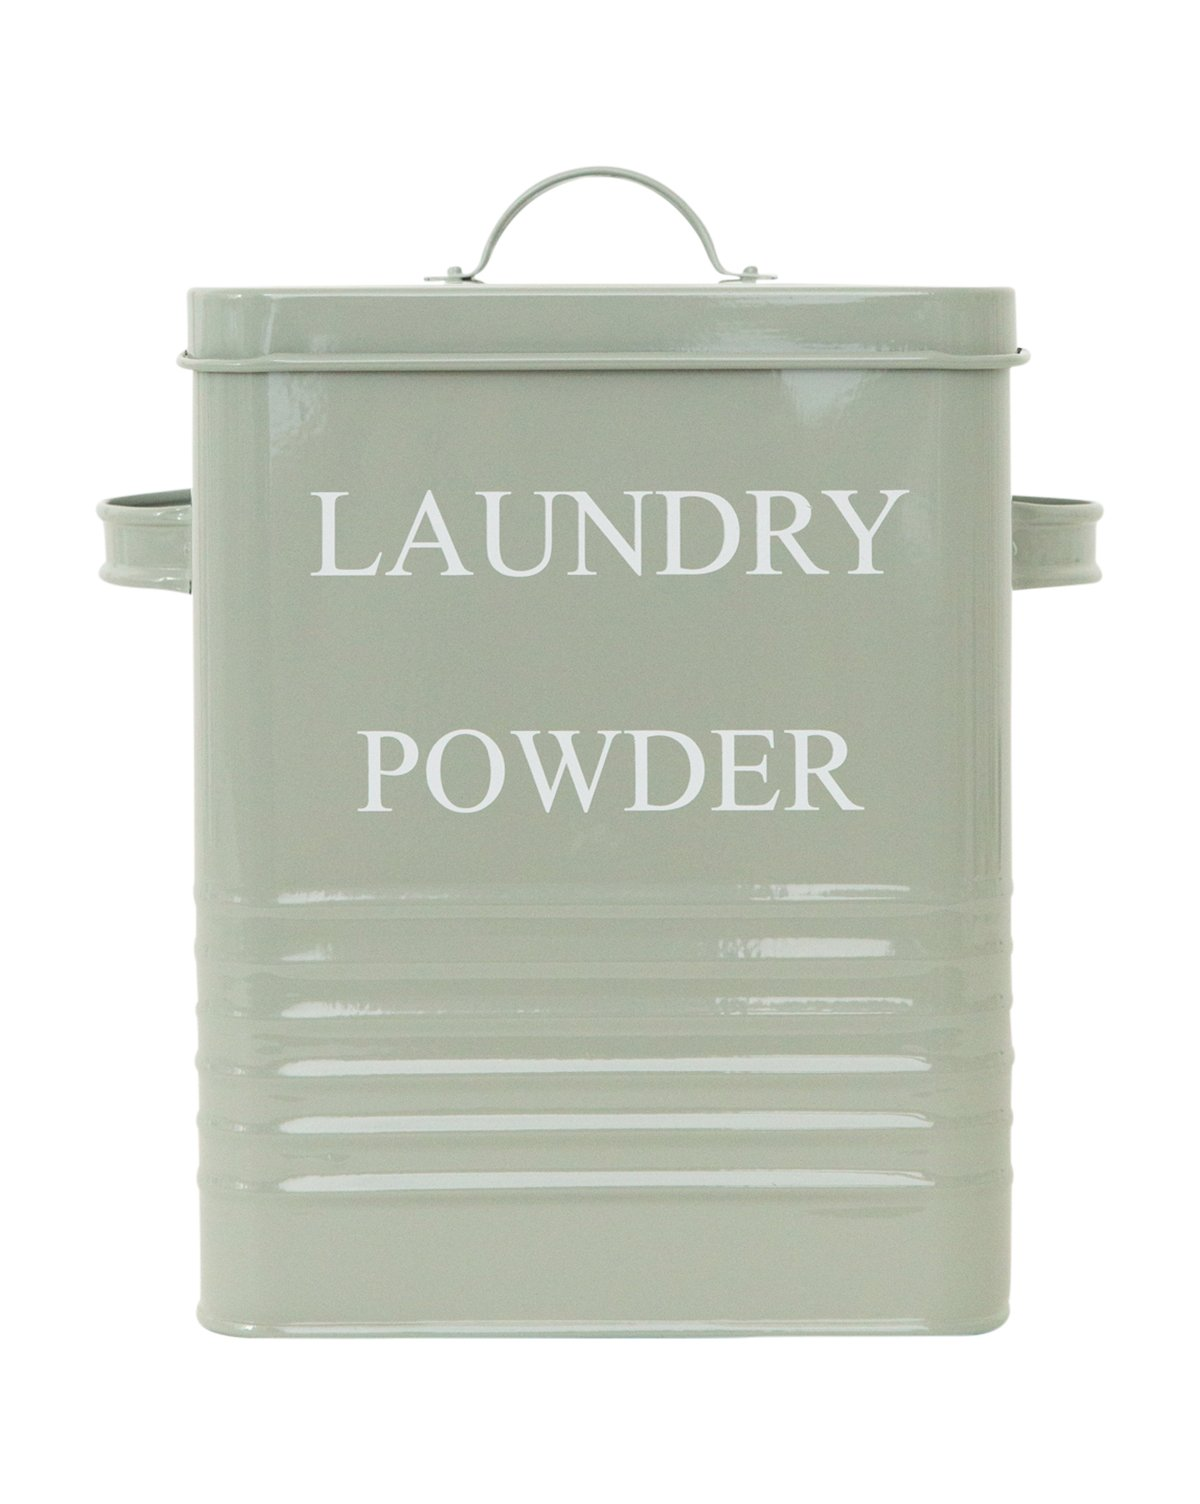 laudry_powder_box.jpg